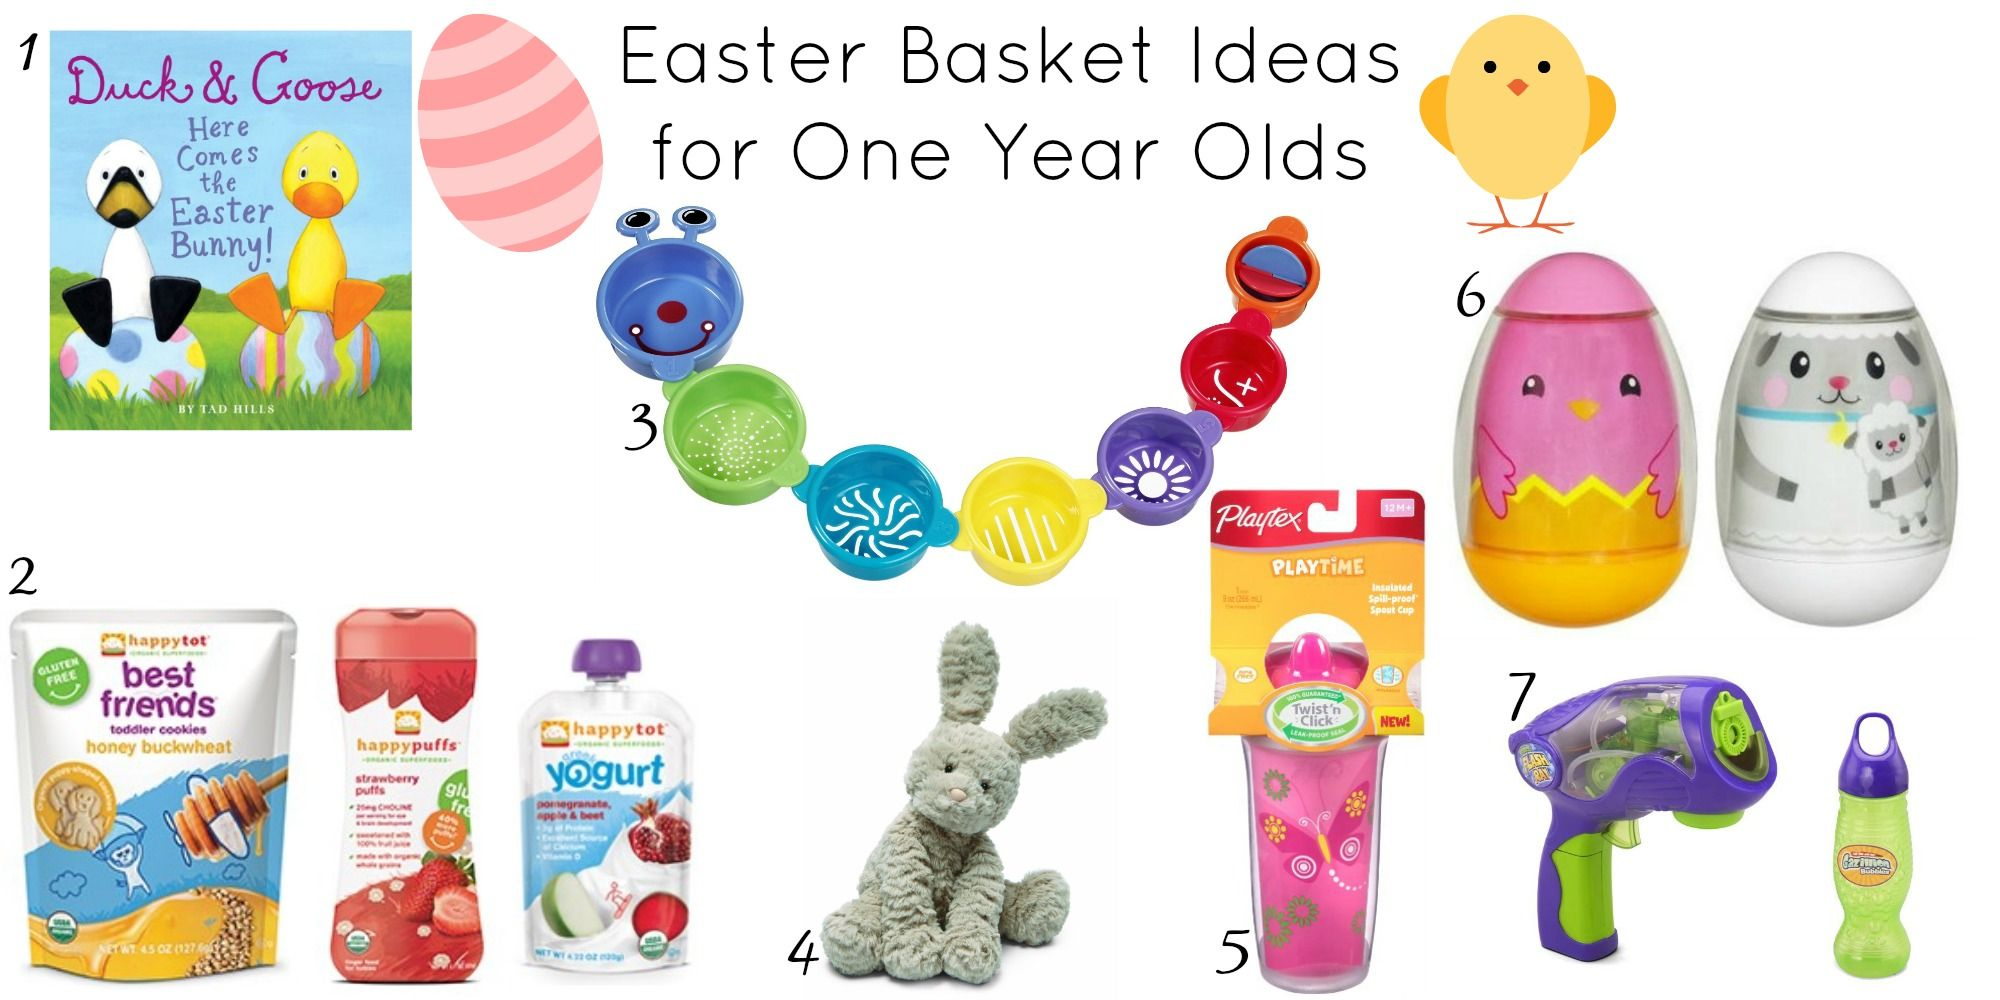 Easter basket ideas for one year olds basket ideas easter easter basket ideas for one year olds negle Choice Image